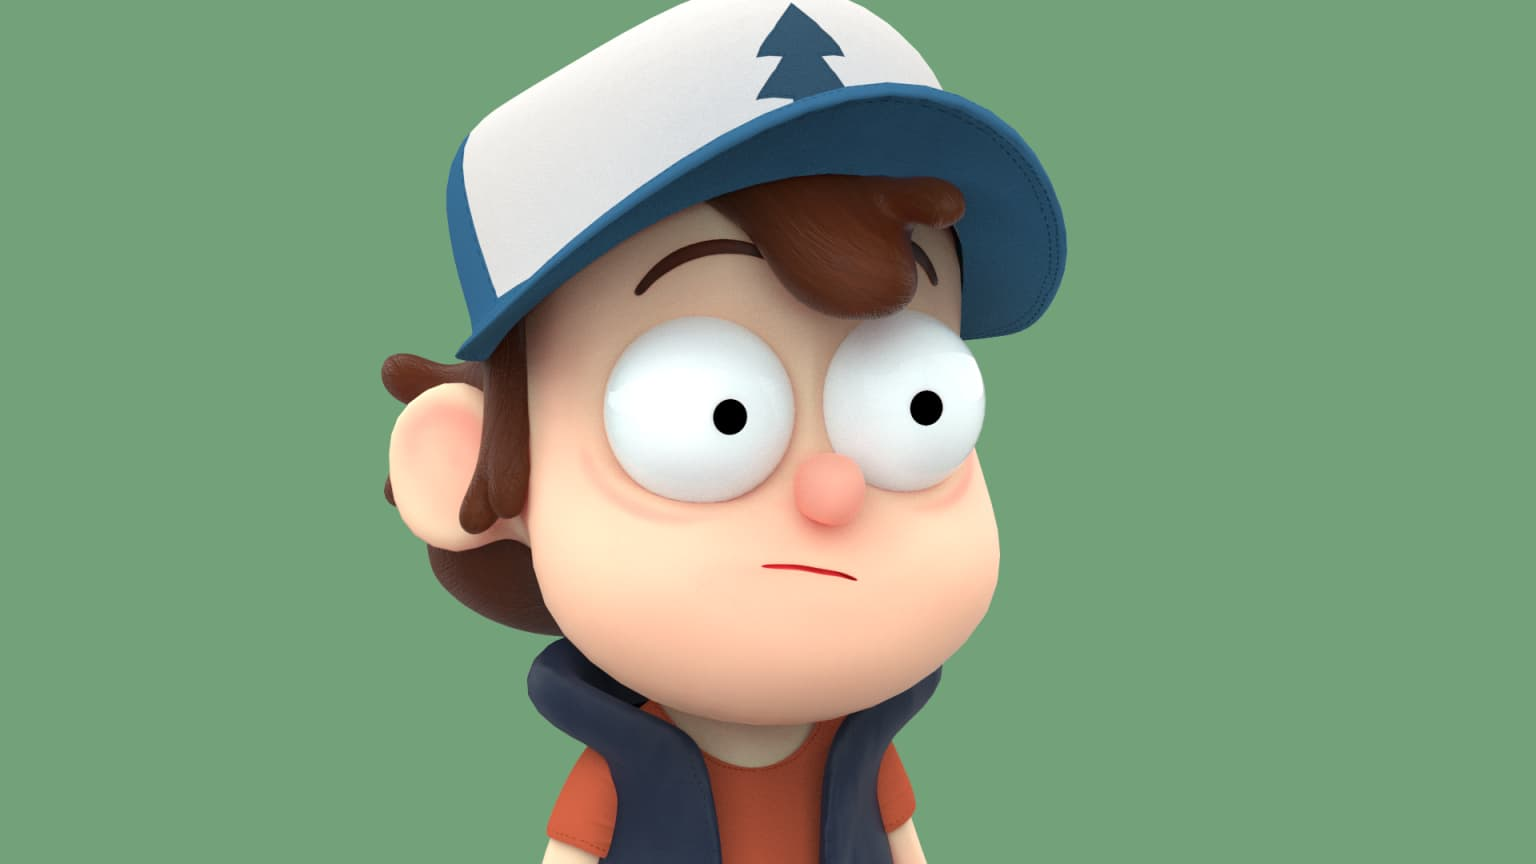 3D: Dipper and Mabel Pines